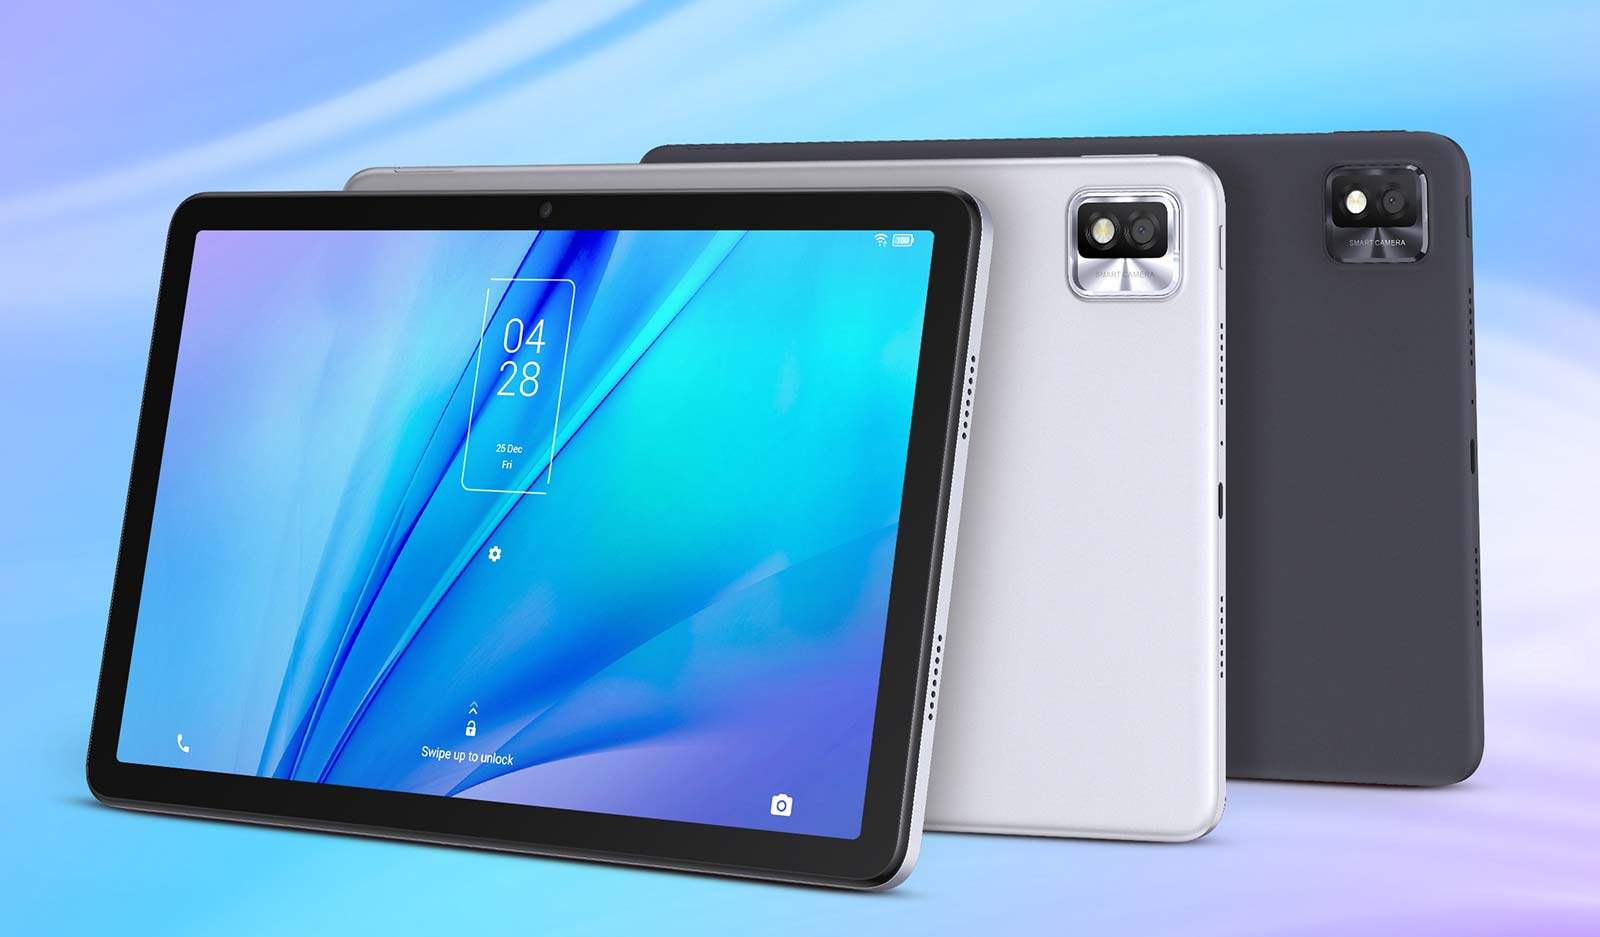 TCL's Tab 10S